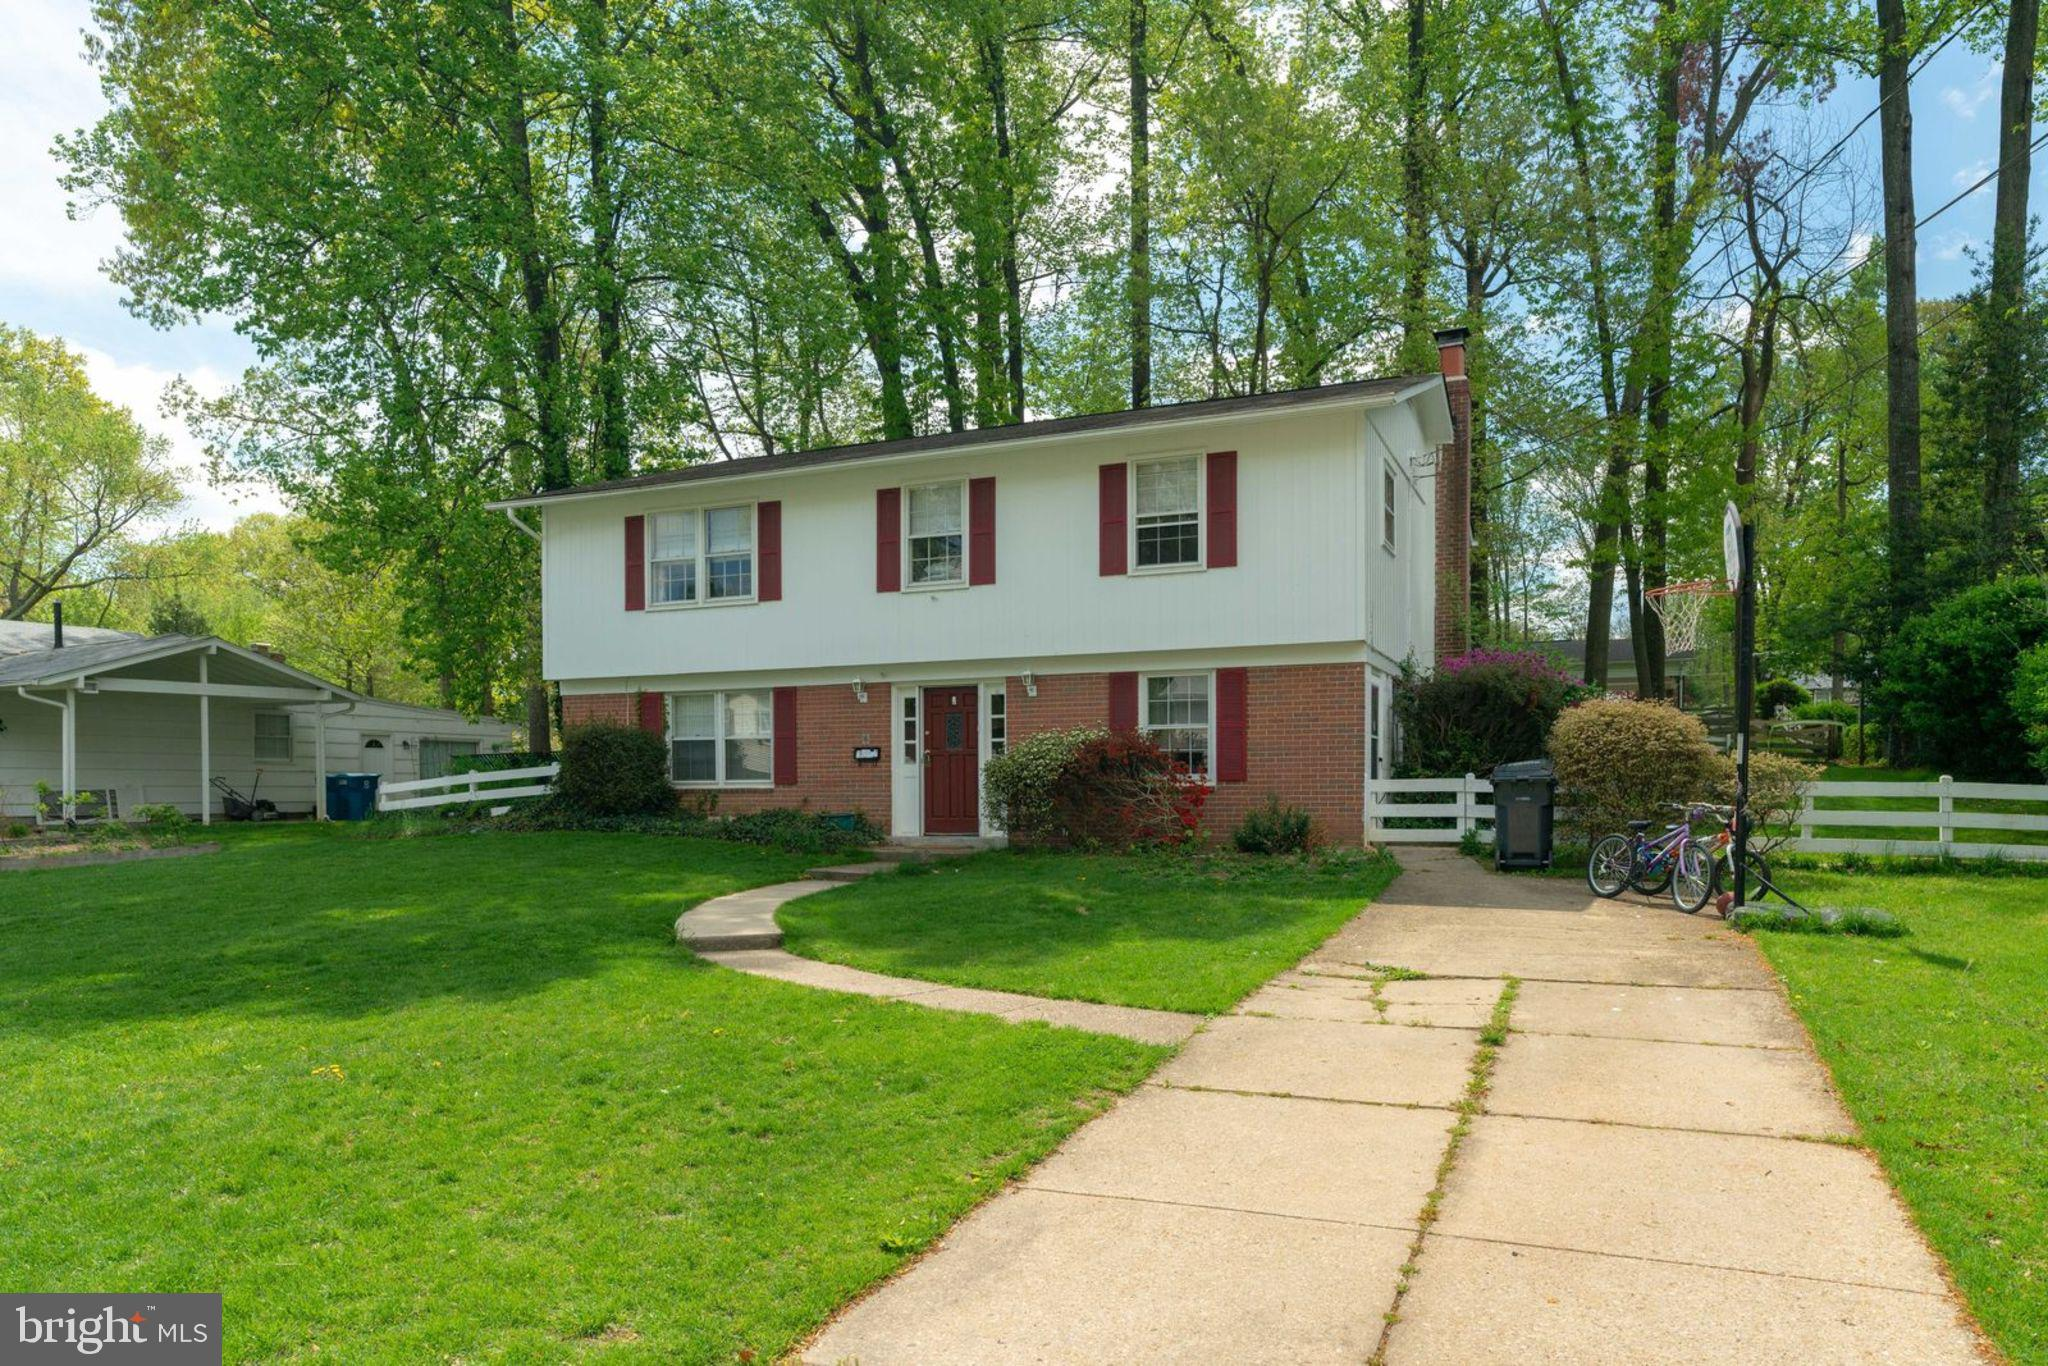 Terrific community, flat  treed lot with nice deck. This raised ranch home is walking distance to schools and park.  Quiet street and plenty of parking.